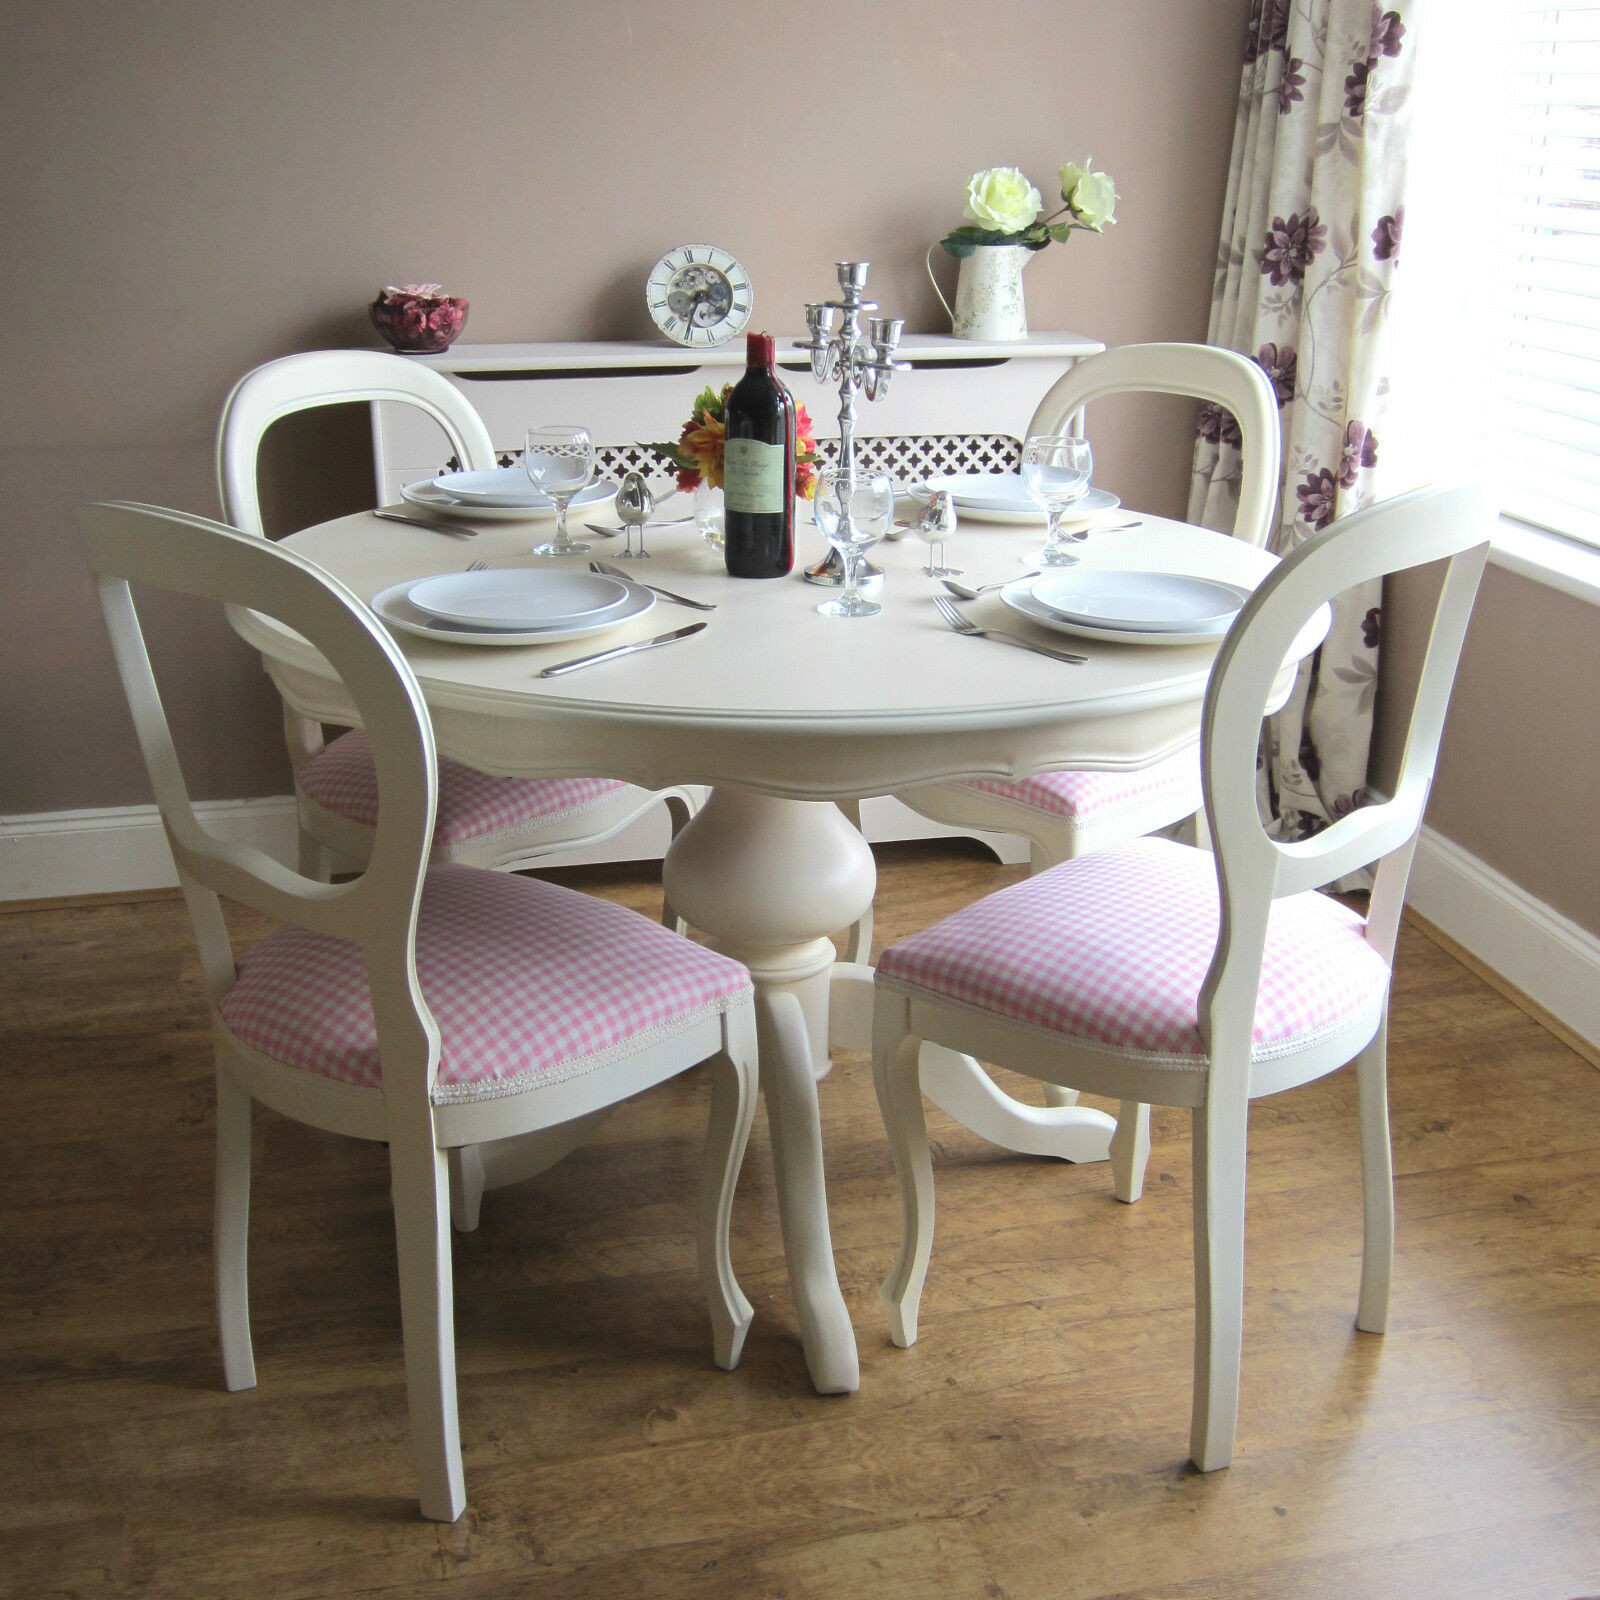 Best ideas about Shabby Chic Kitchen Table . Save or Pin Shabby Chic Table and Chairs Now.